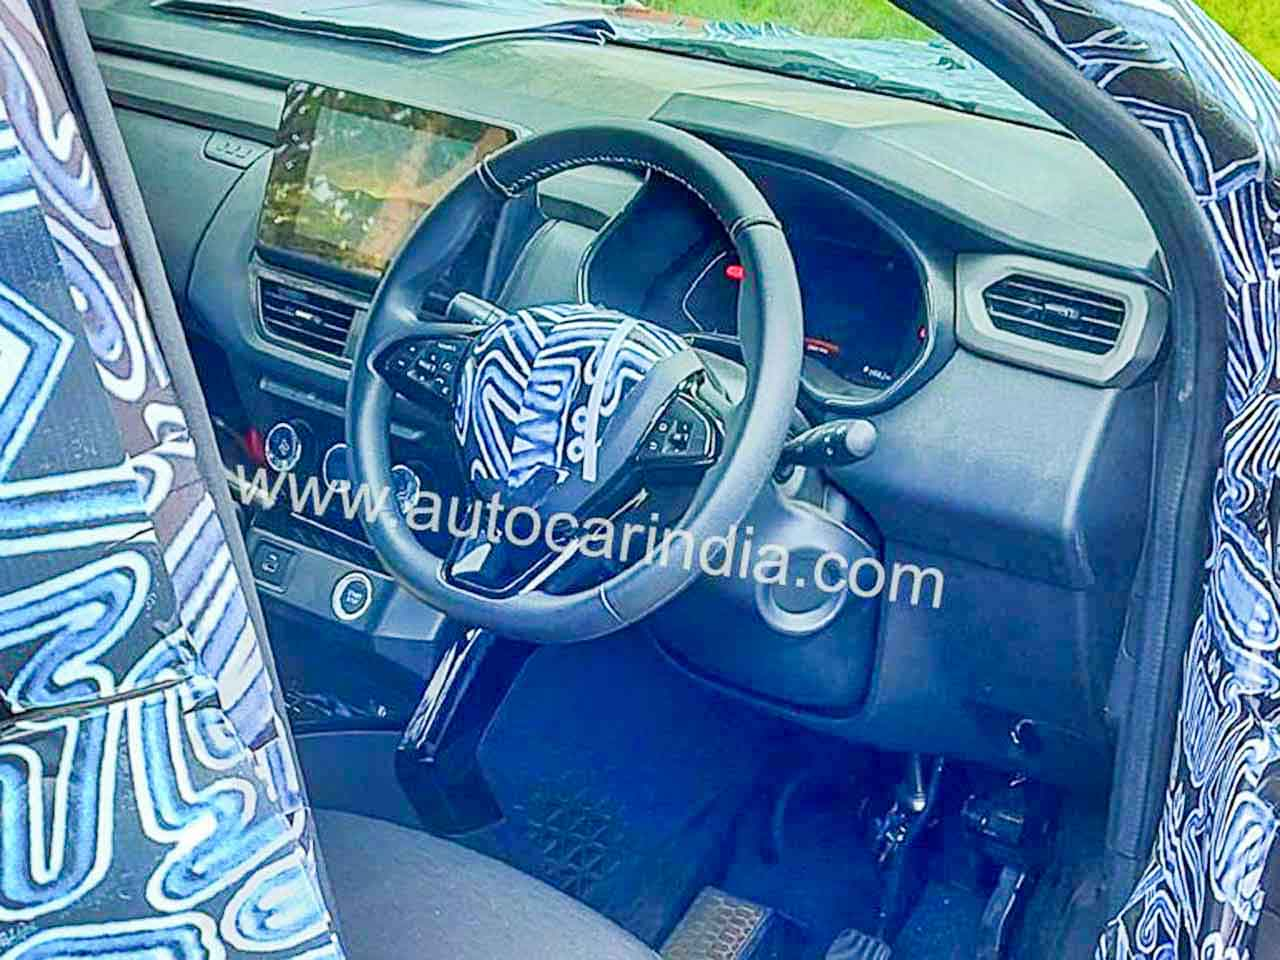 Renault Kiger small SUV dashboard spied – Gets touchscreen, button start